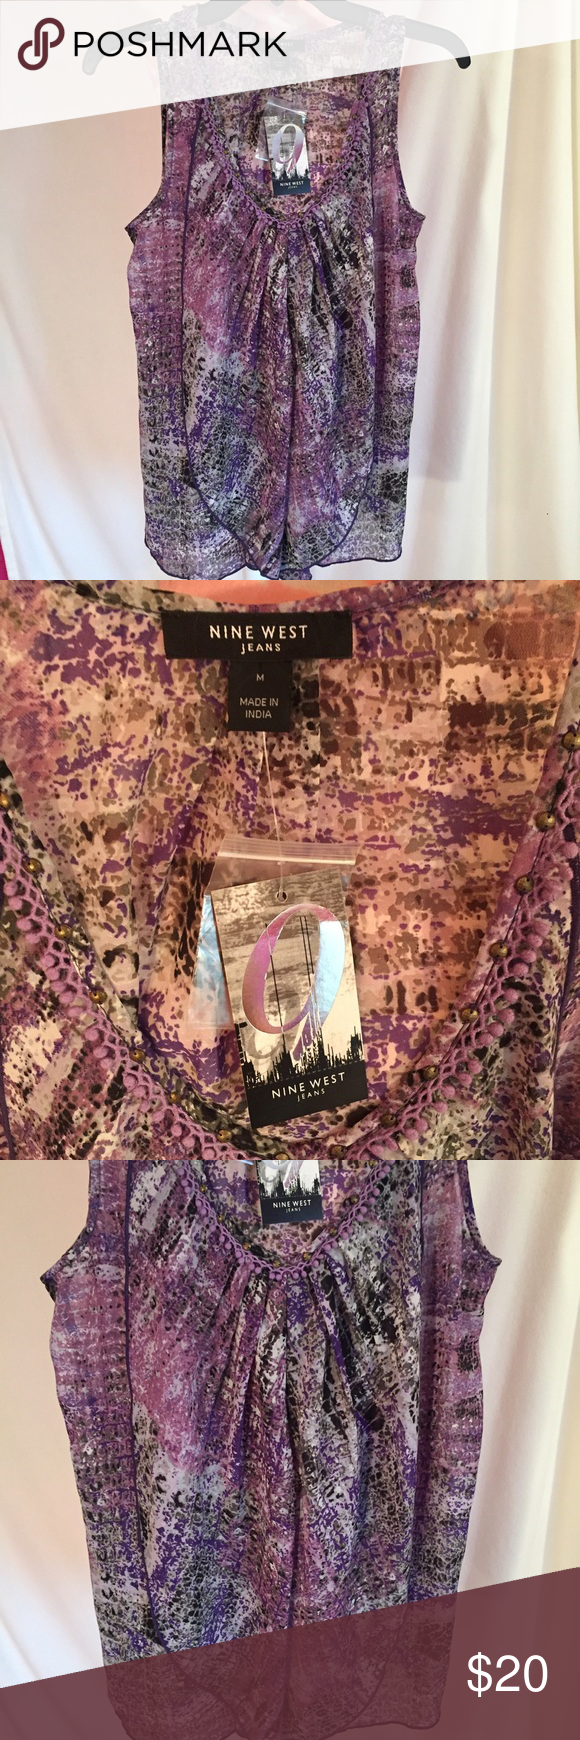 Nine West Purple Pattern Chiffon Tank purple chiffon patterned tank with a scooped neckline and small ruffle in the front! Perfect for business casual attire. Never been worn//still has tags! Nine West Tops Tank Tops